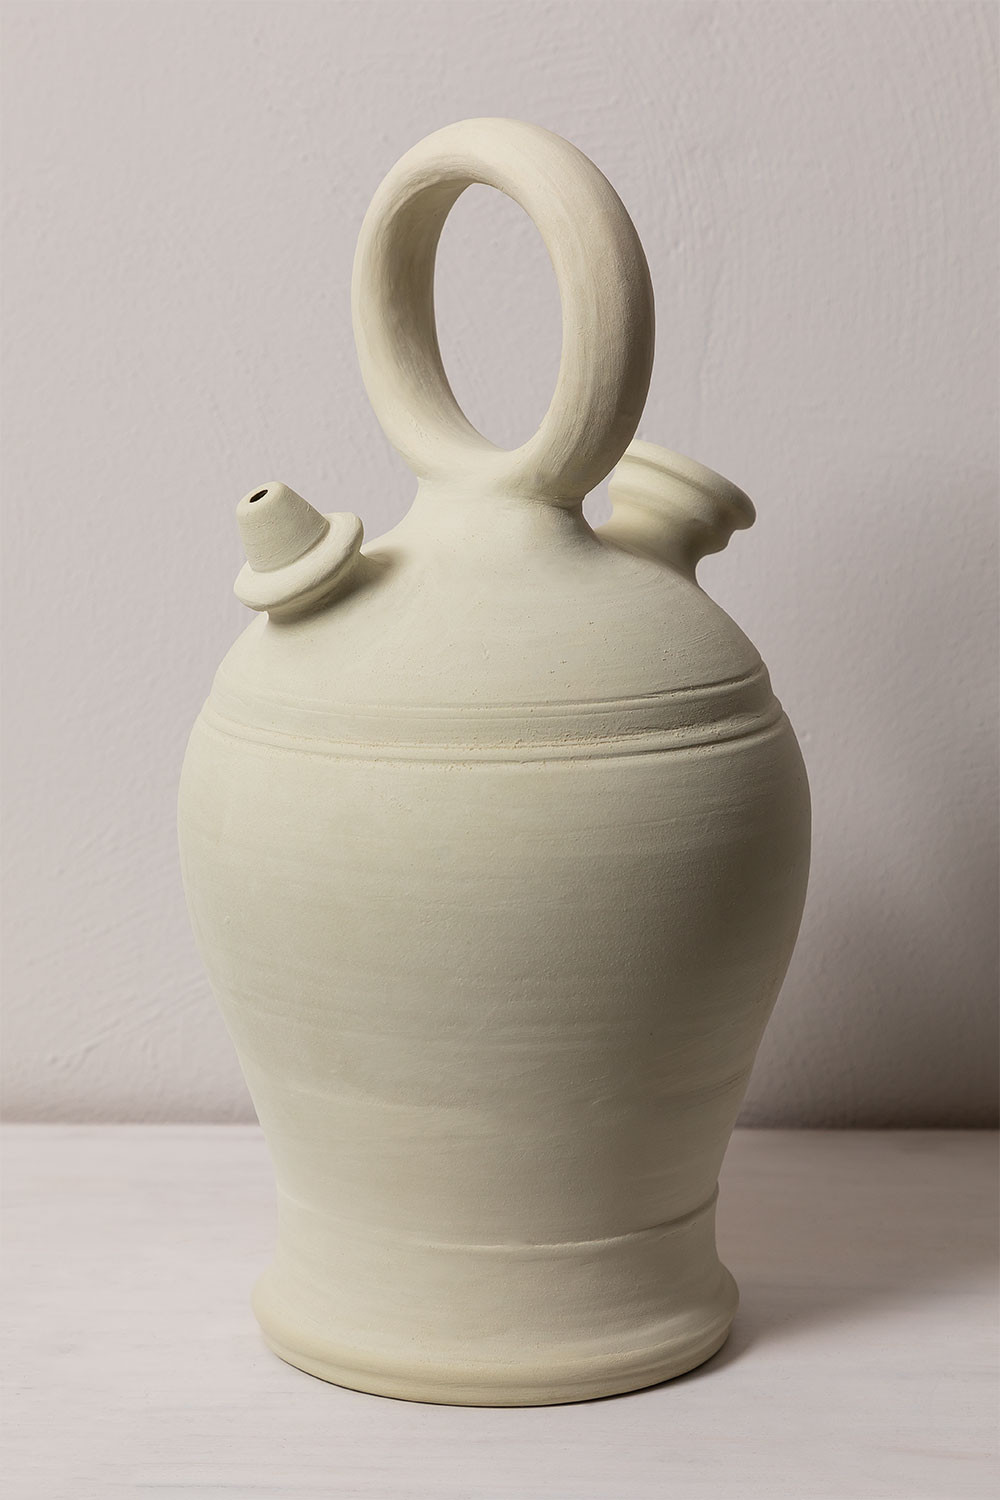 Clay Jug 6 L. Cantiroh, gallery image 1